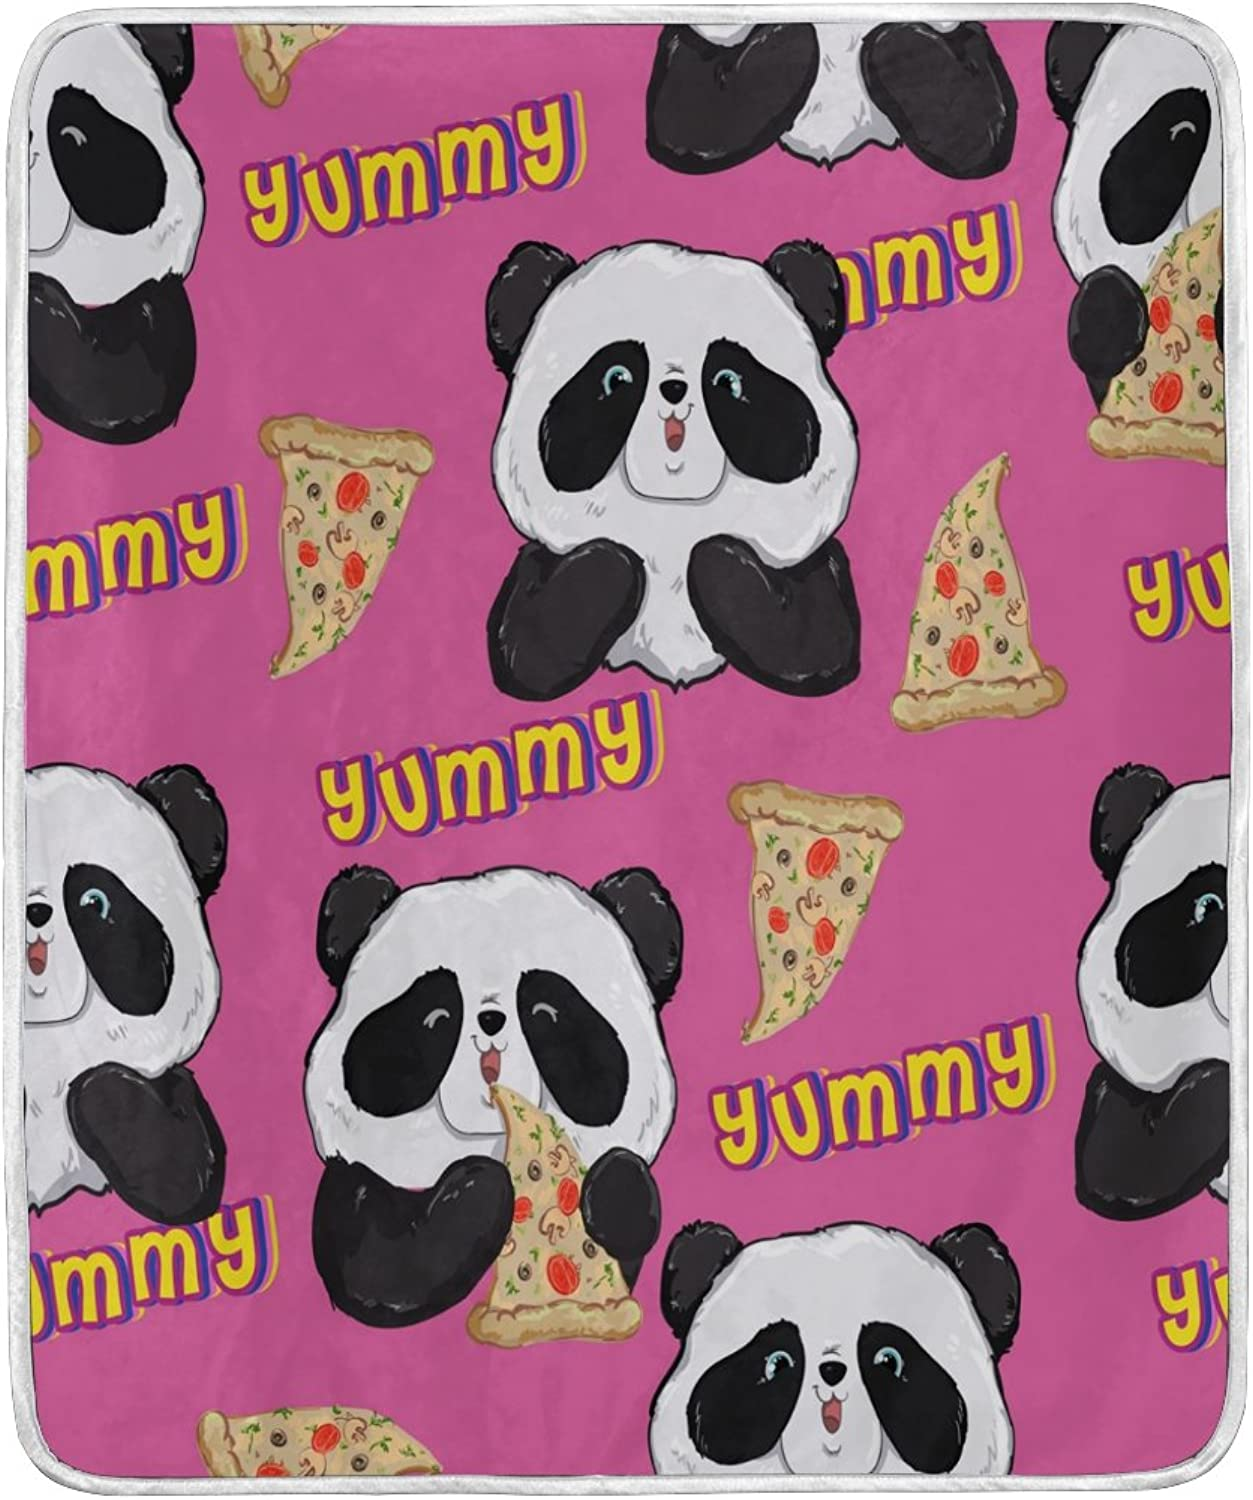 ALAZA Home Decor Cute Panda Pizza Blanket Soft Warm Blankets for Bed Couch Sofa Lightweight Travelling Camping 60 x 50 inch Throw Size for Kids Boys Women